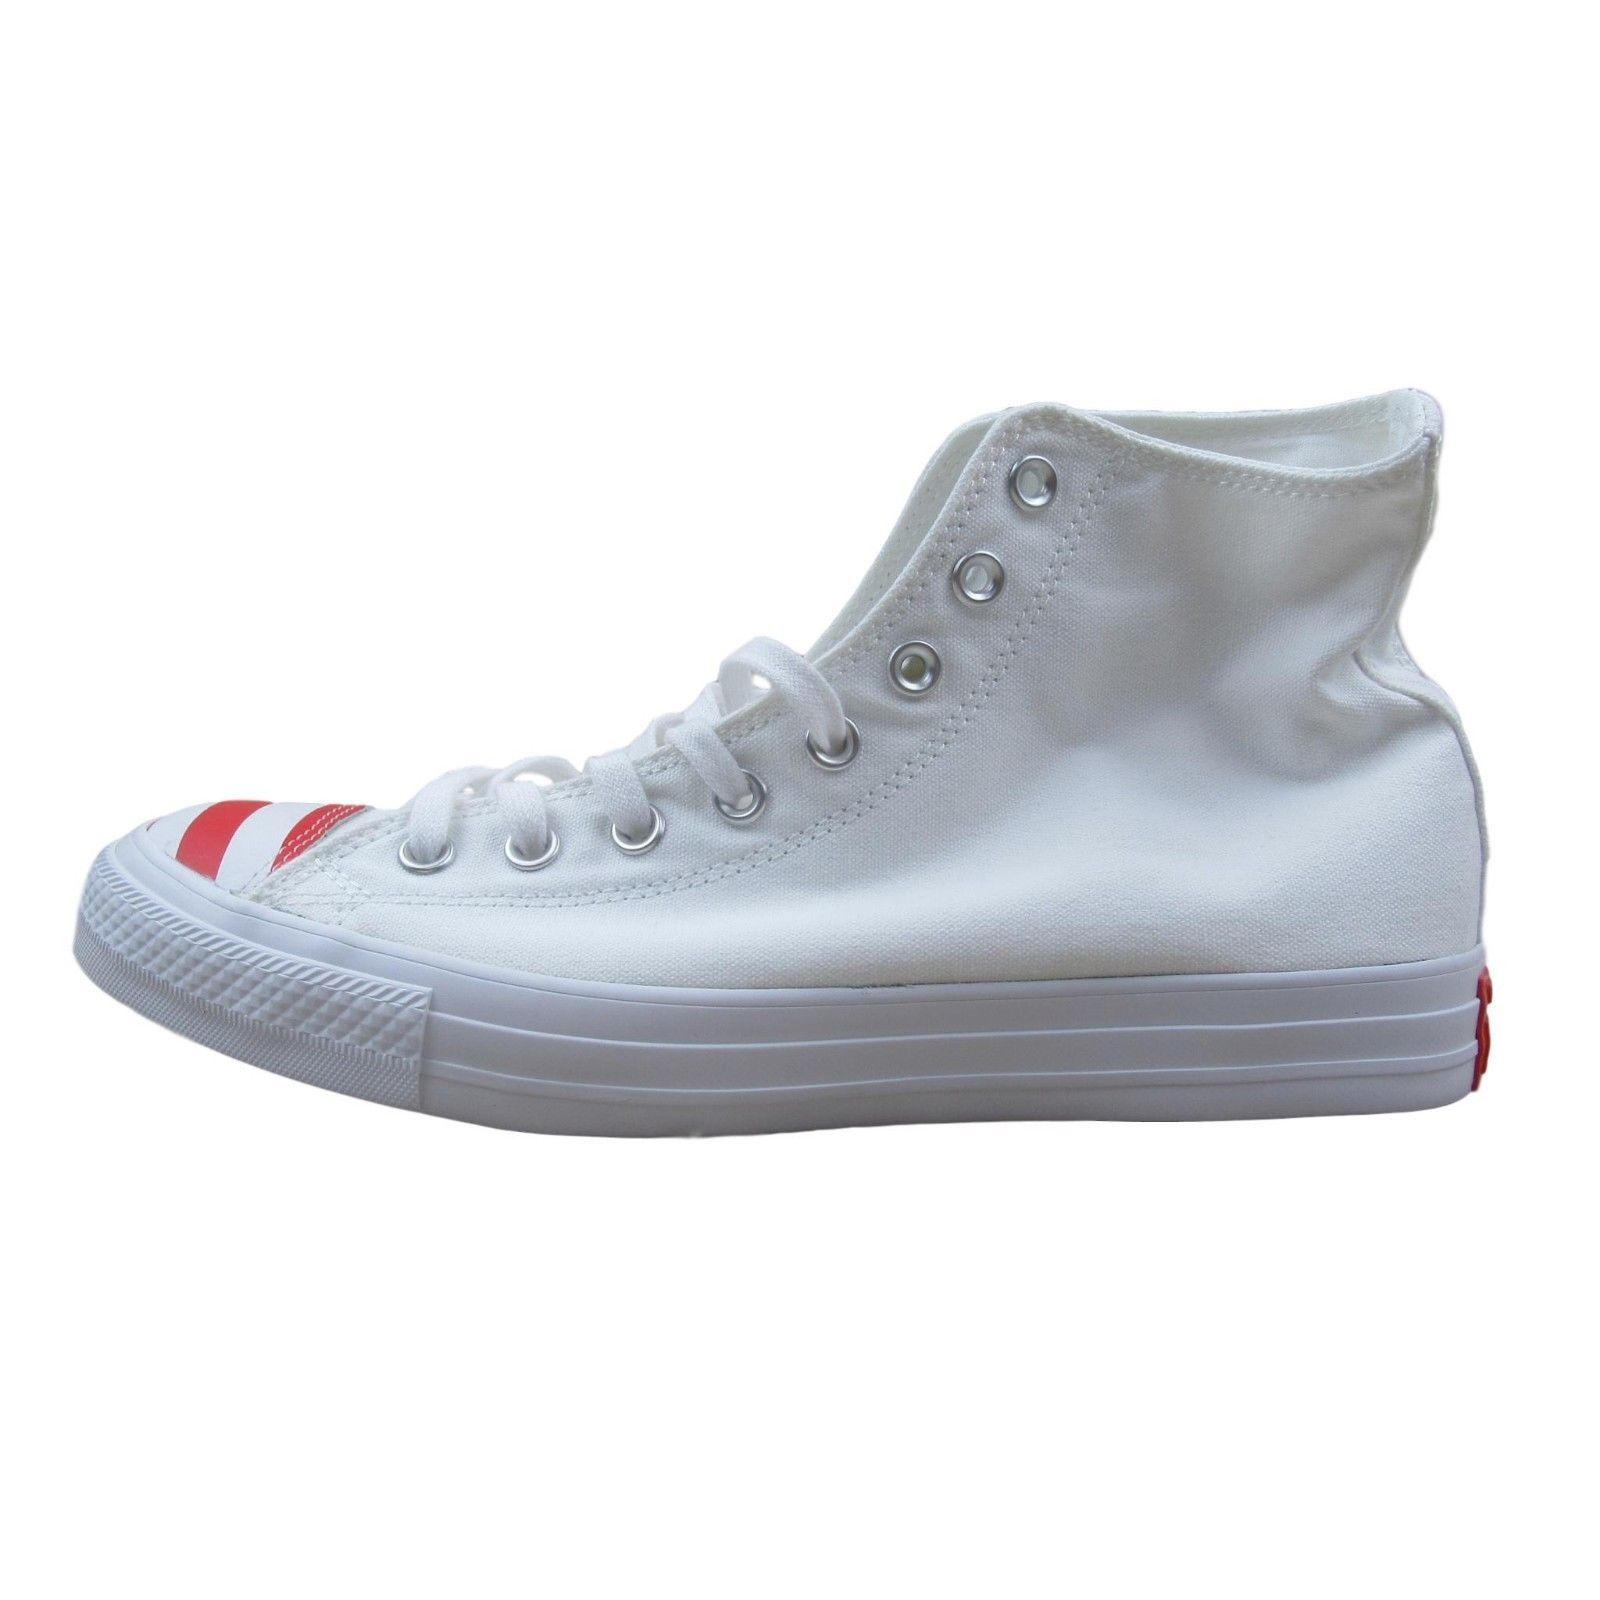 67dc3a83728 Converse Chuck Taylor All Star High Size 9 Shoes Mens Toe Flag USA White  153911C